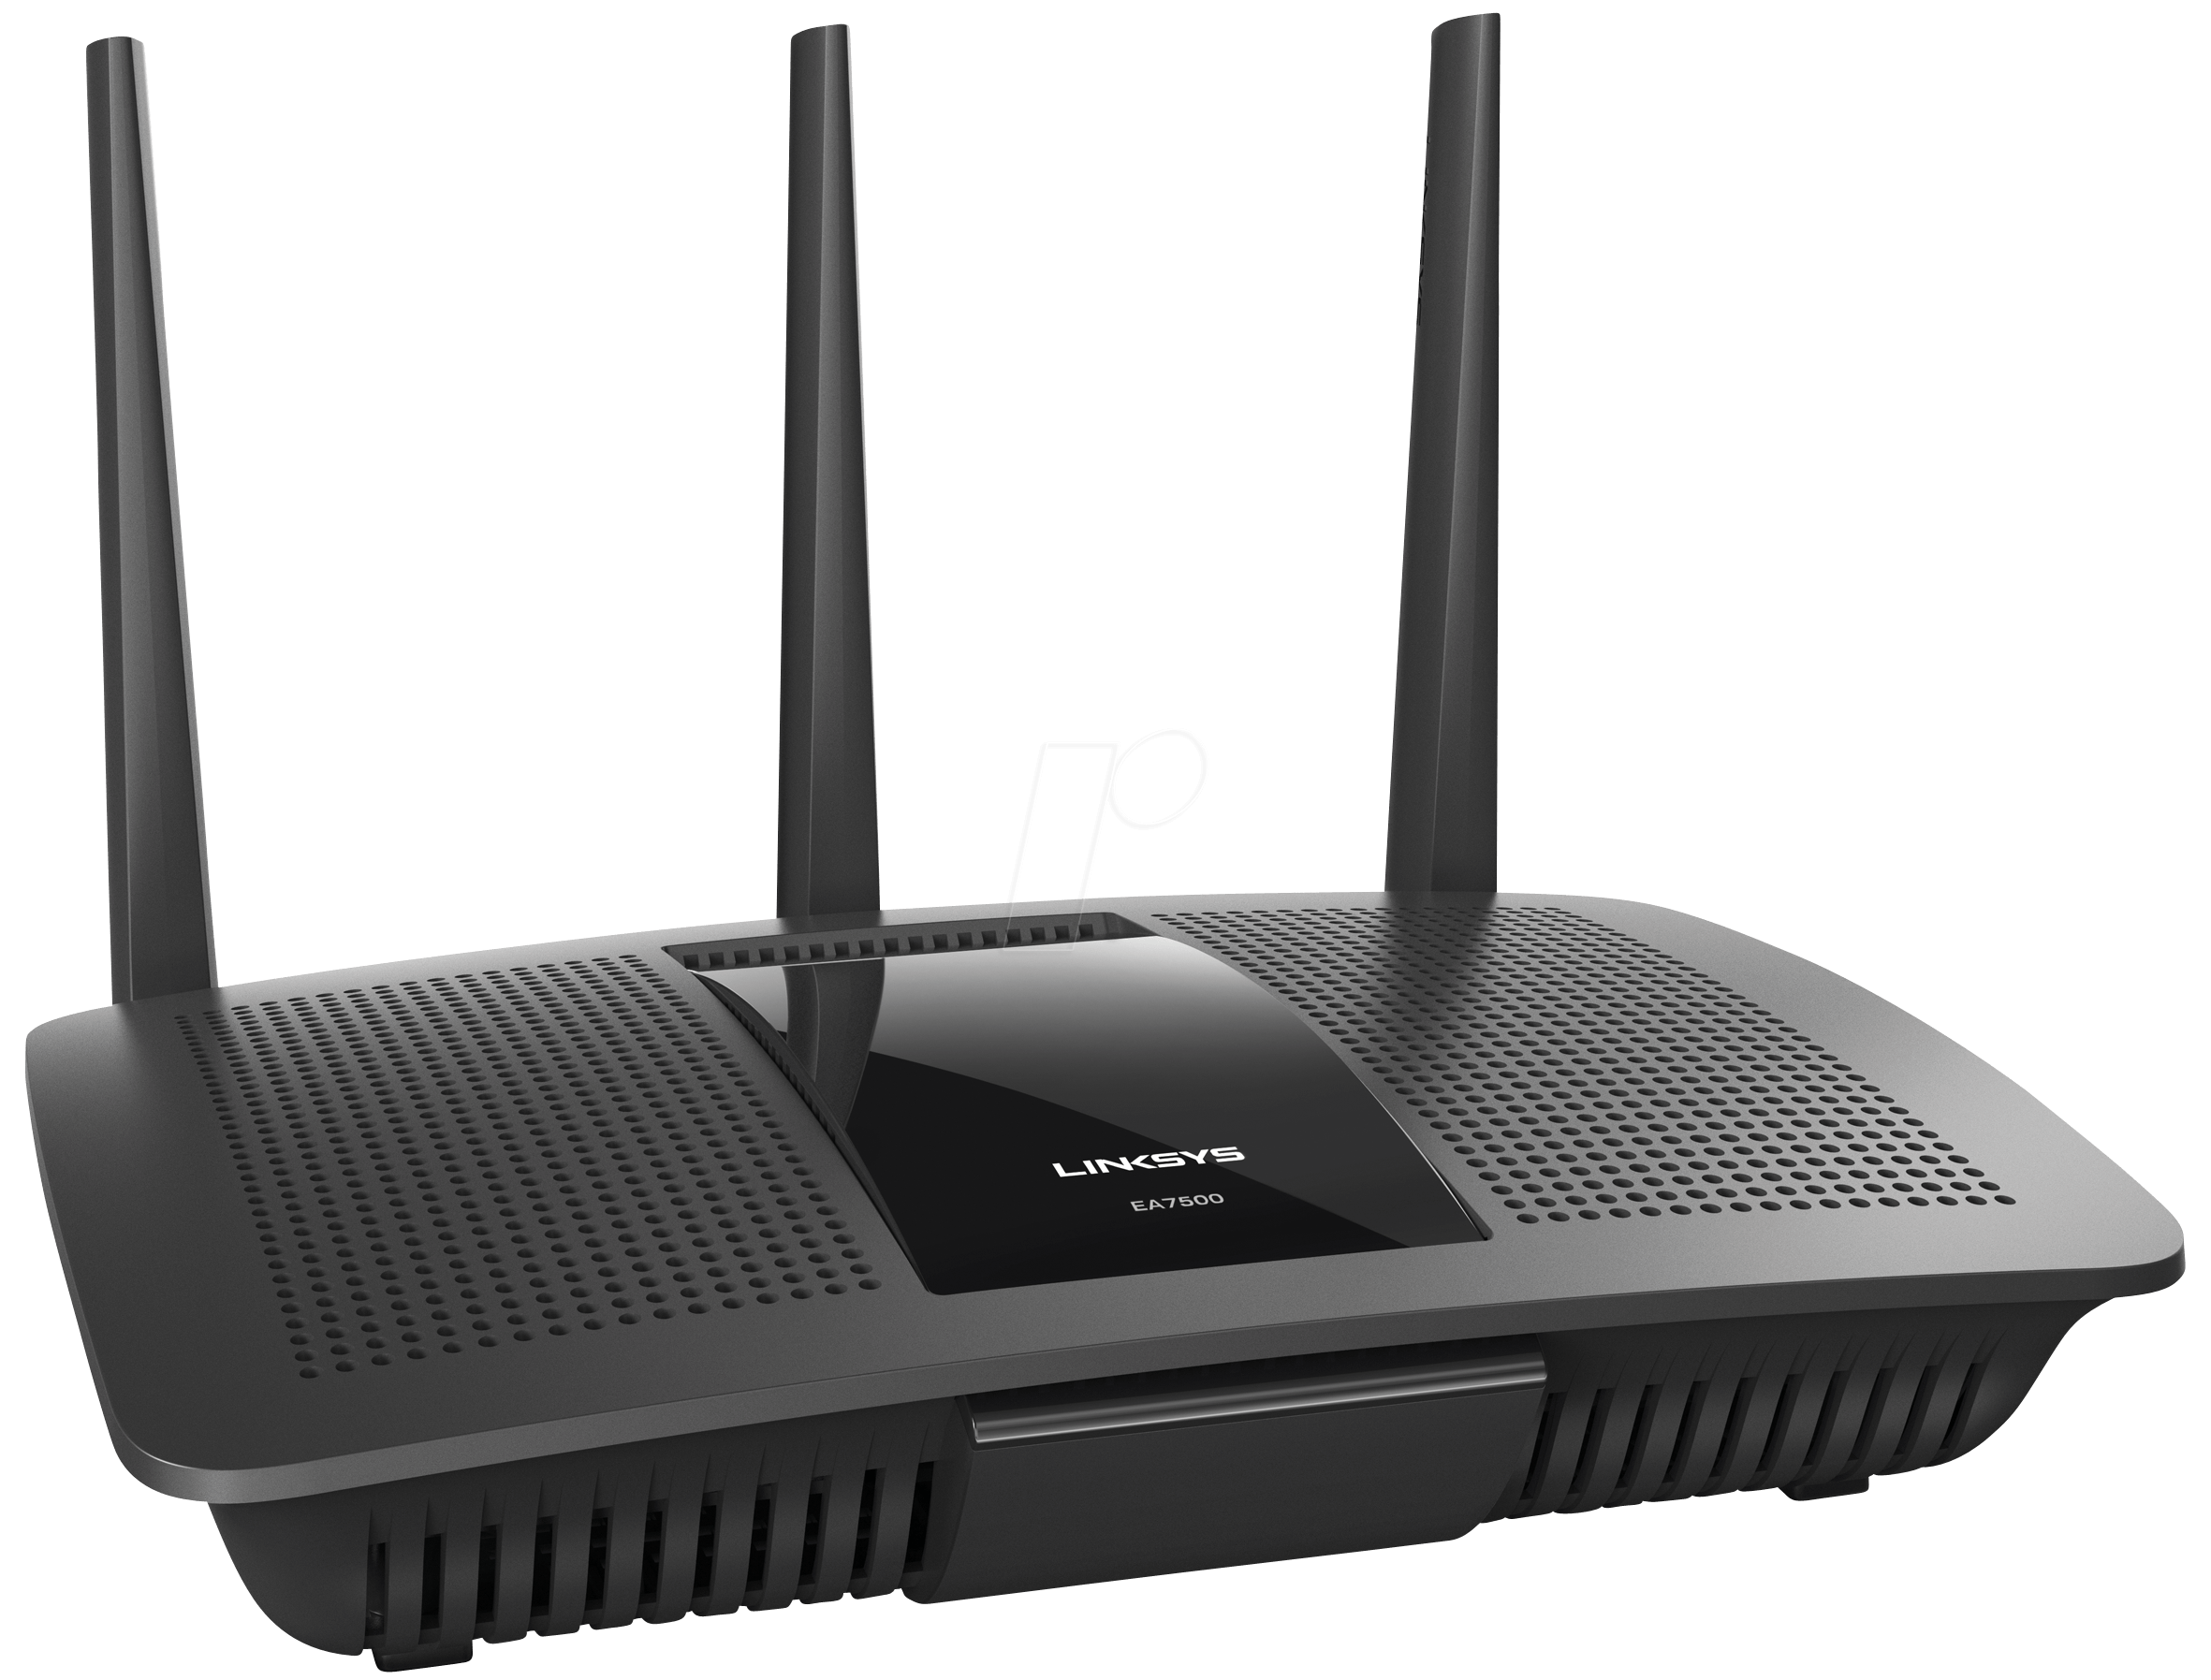 Linksys Router Png LINKSYS EA7500: WIFI A...